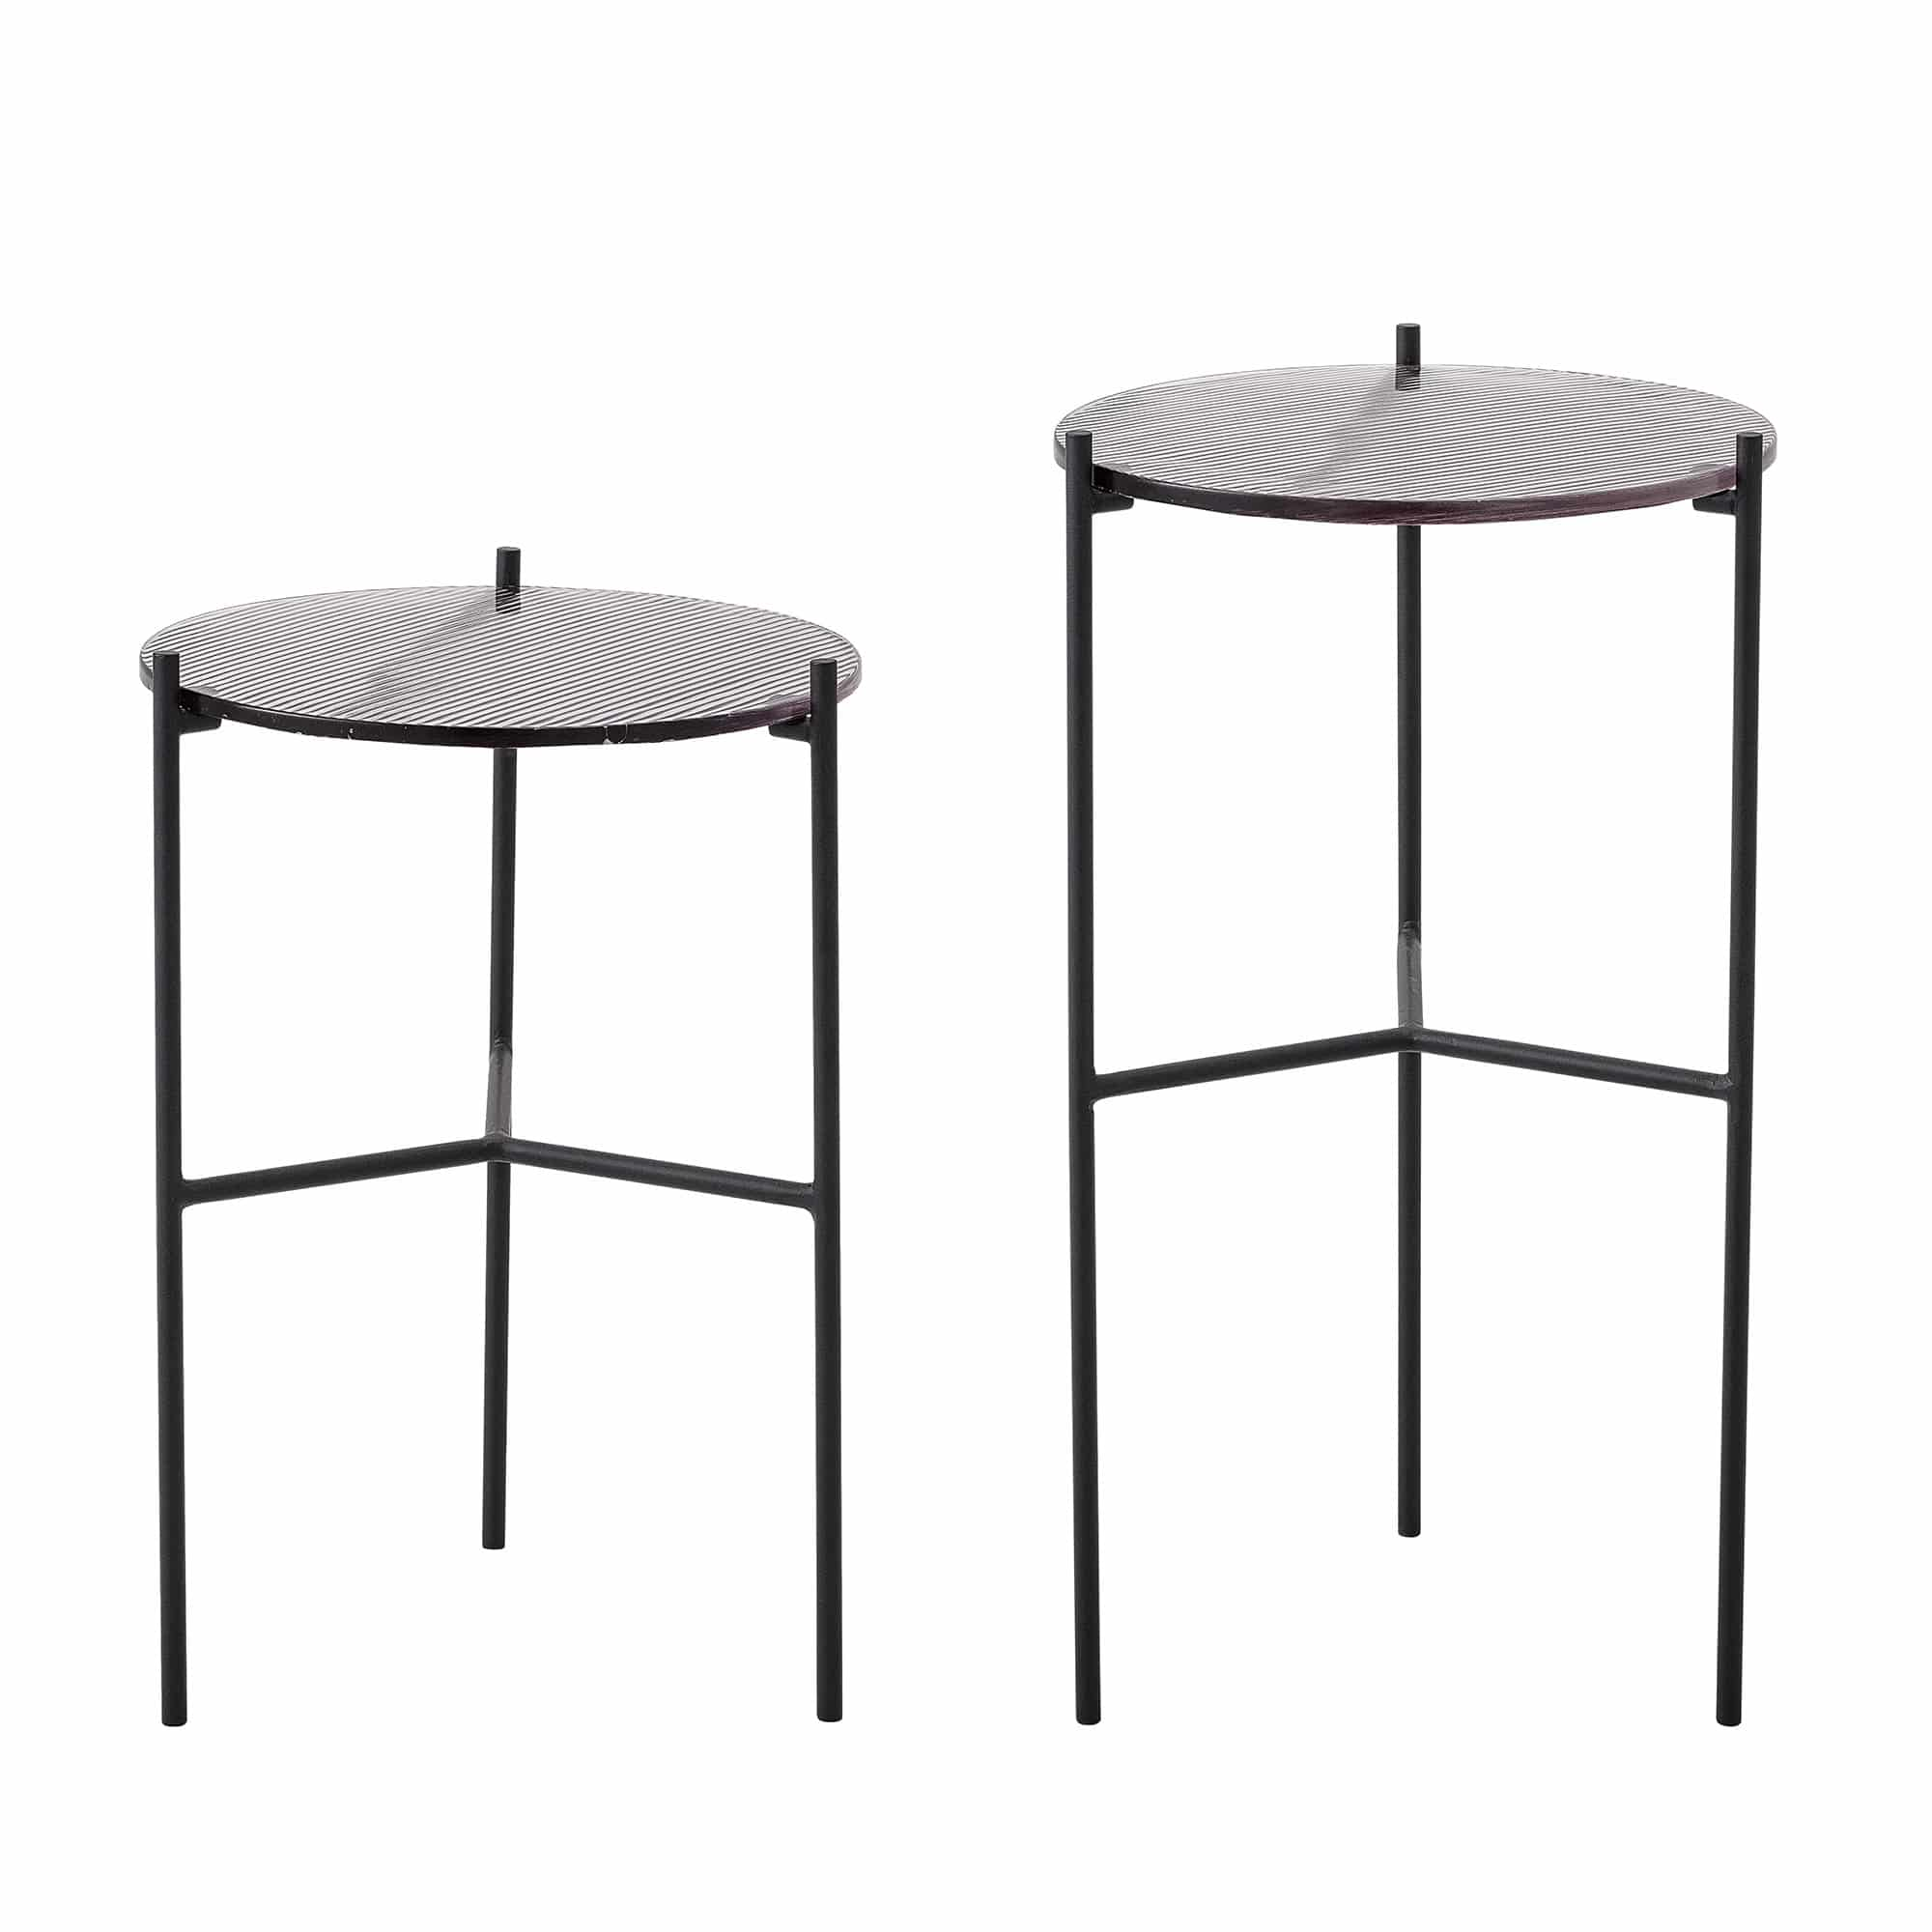 Cille Sidetable Grey Glass